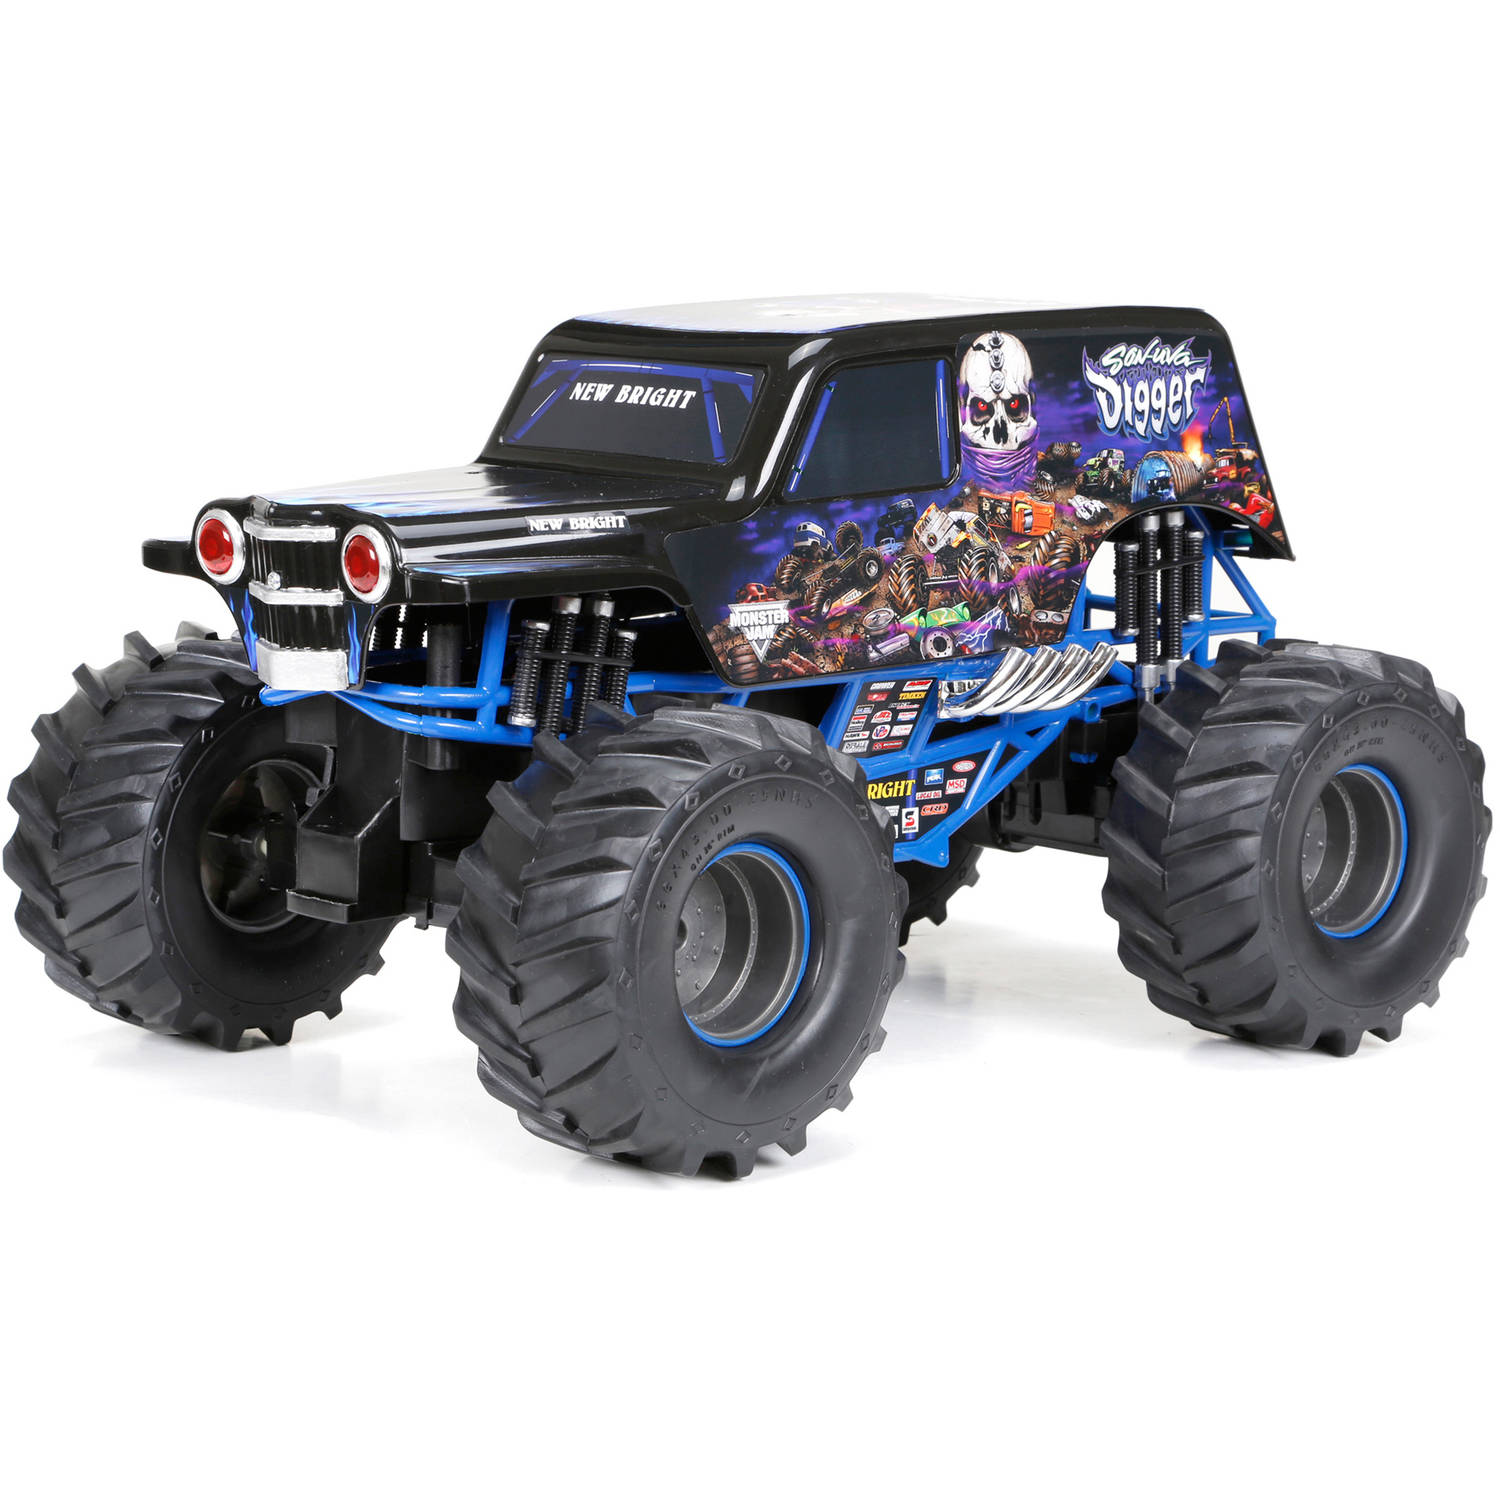 1:10 Full-Function 9.6V Monster Jam Sonuva Digger R/C Car, Black